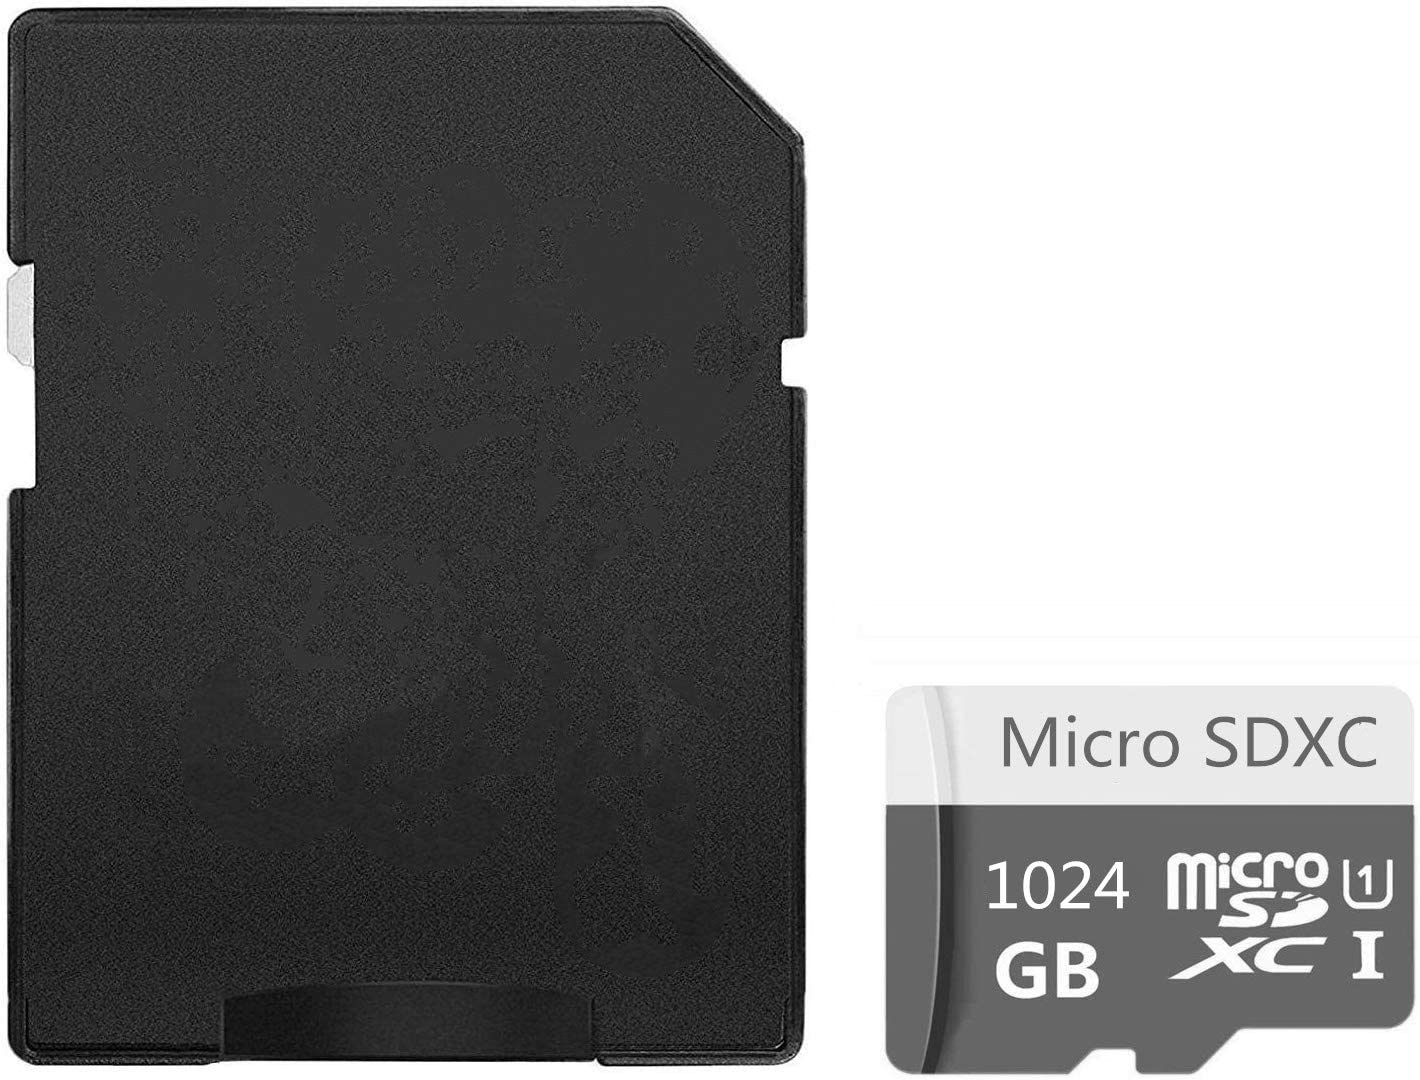 Micro SD Card 1024GB High Speed Class 10 Micro SD SDXC Card with Adapter (1024GB)